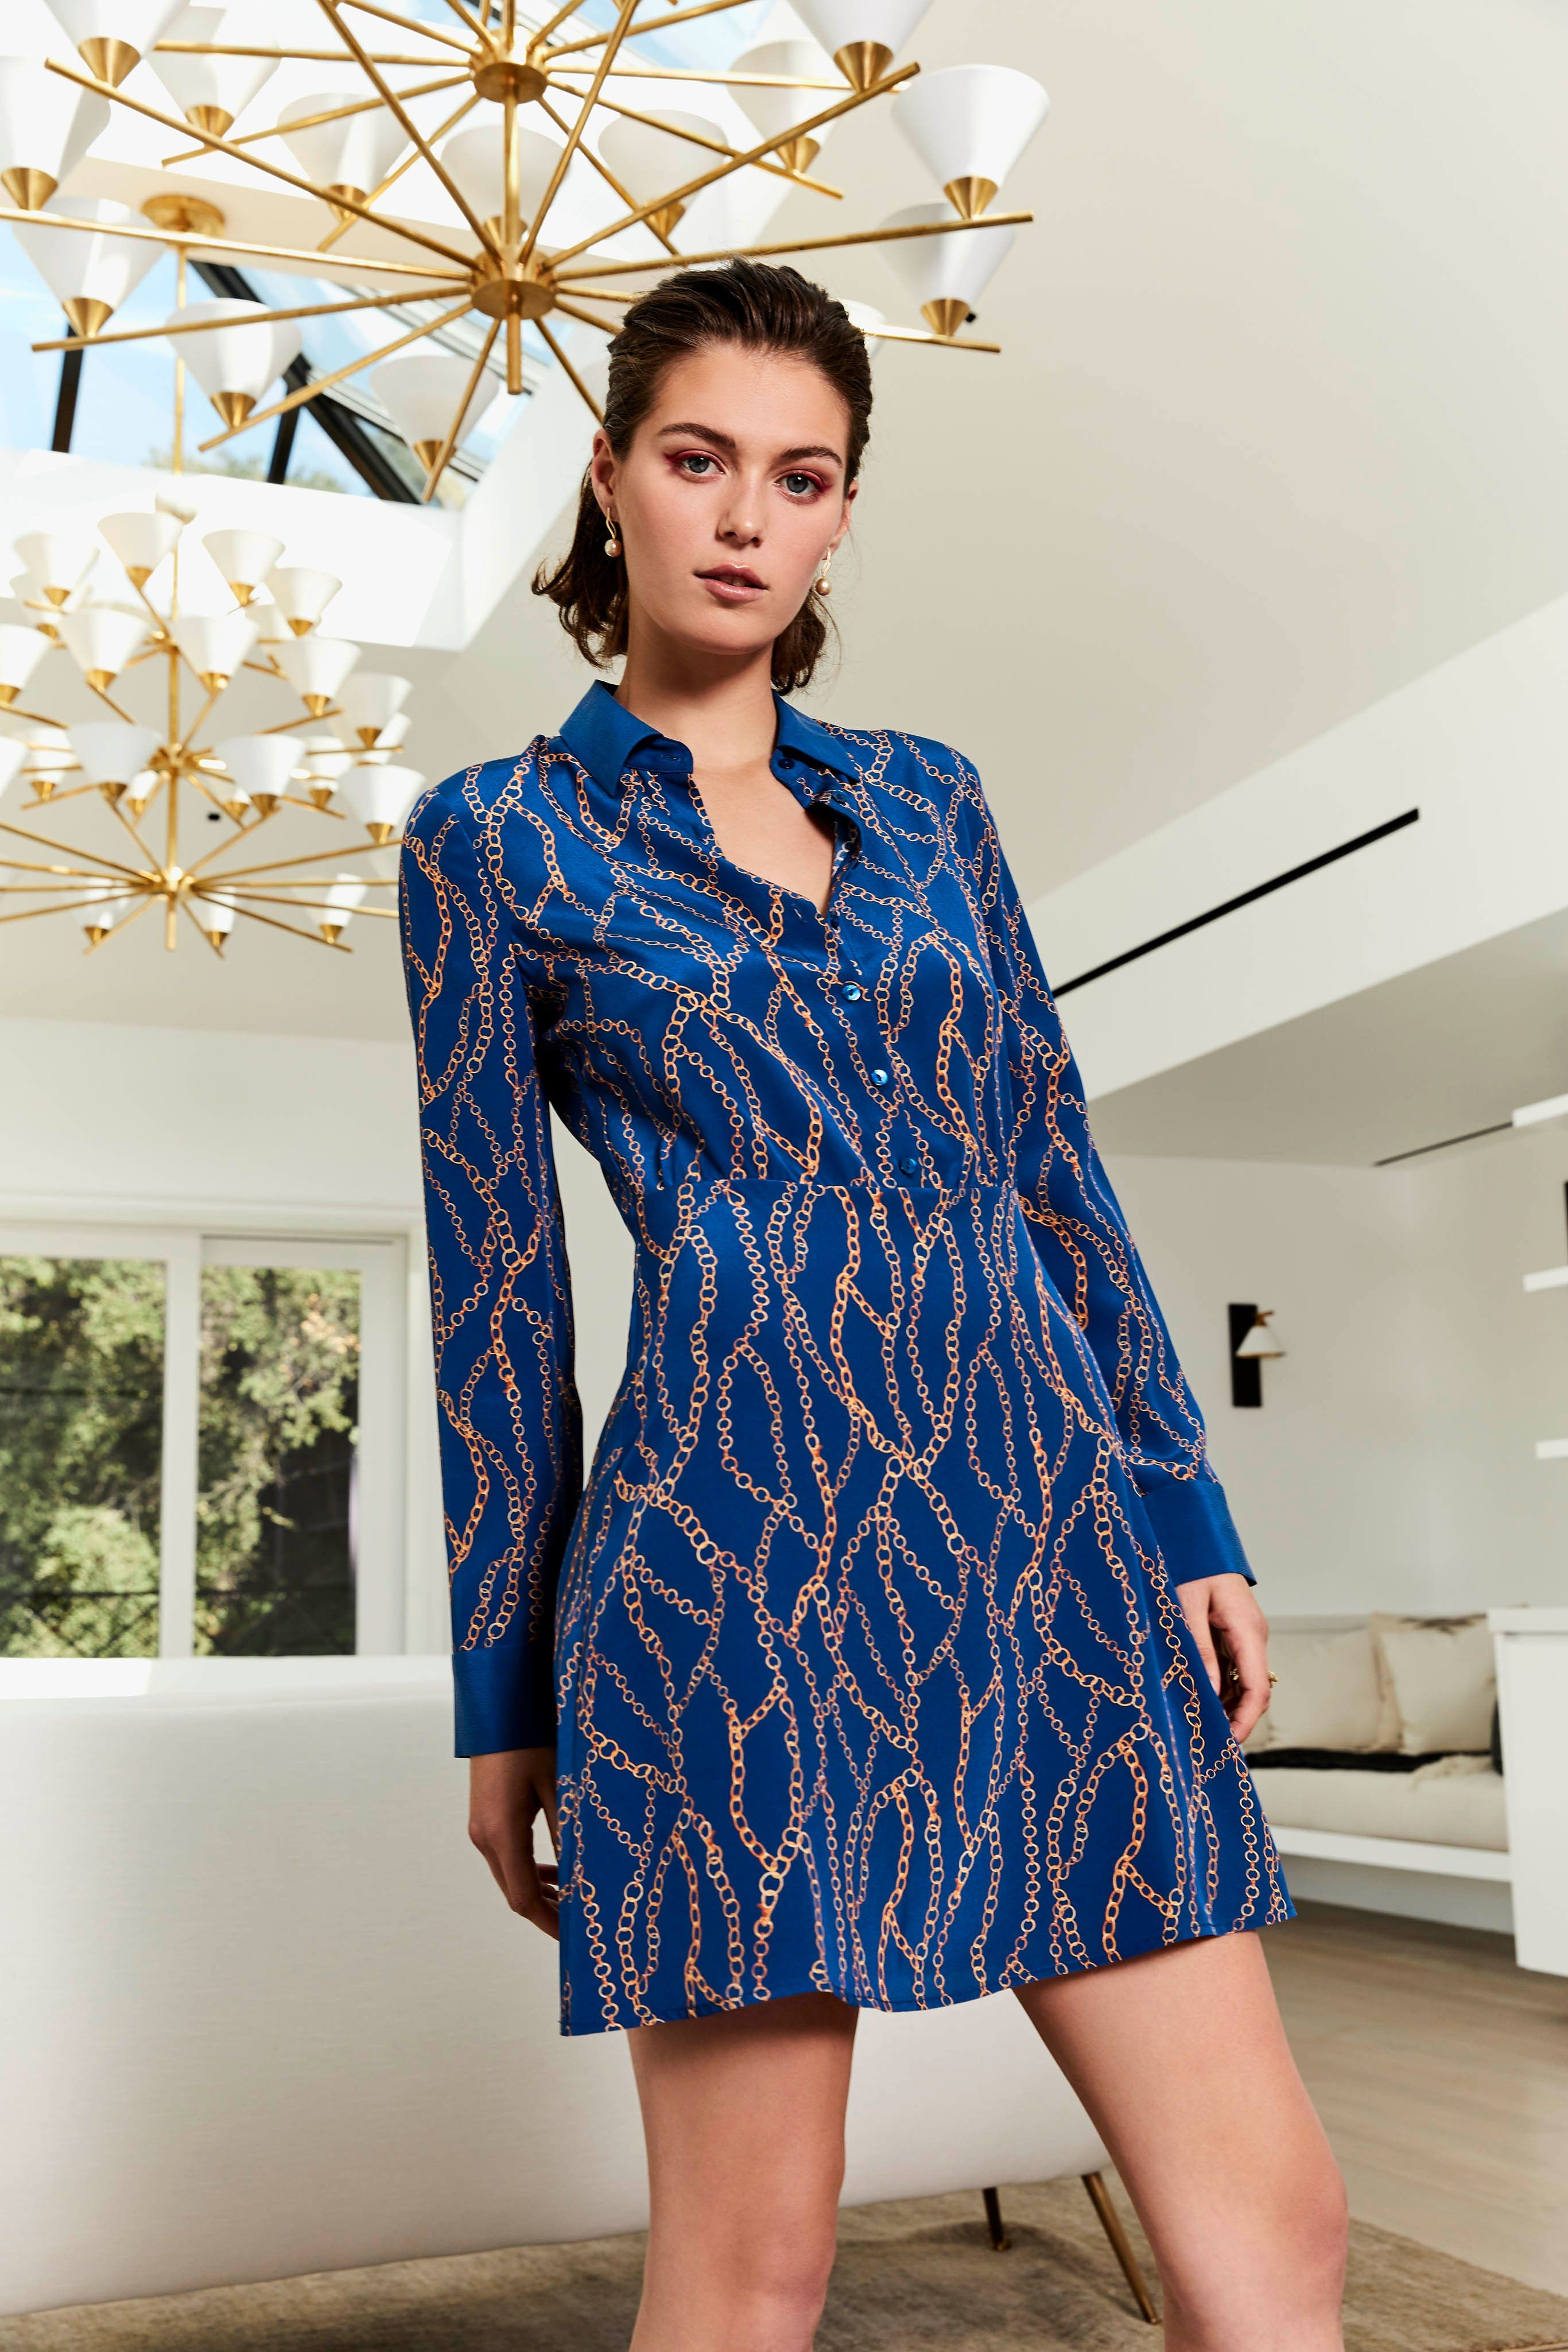 L Agence Spring 2019 Ready-to-Wear Fashion Show   spring 19 runway ... 5268c40a78